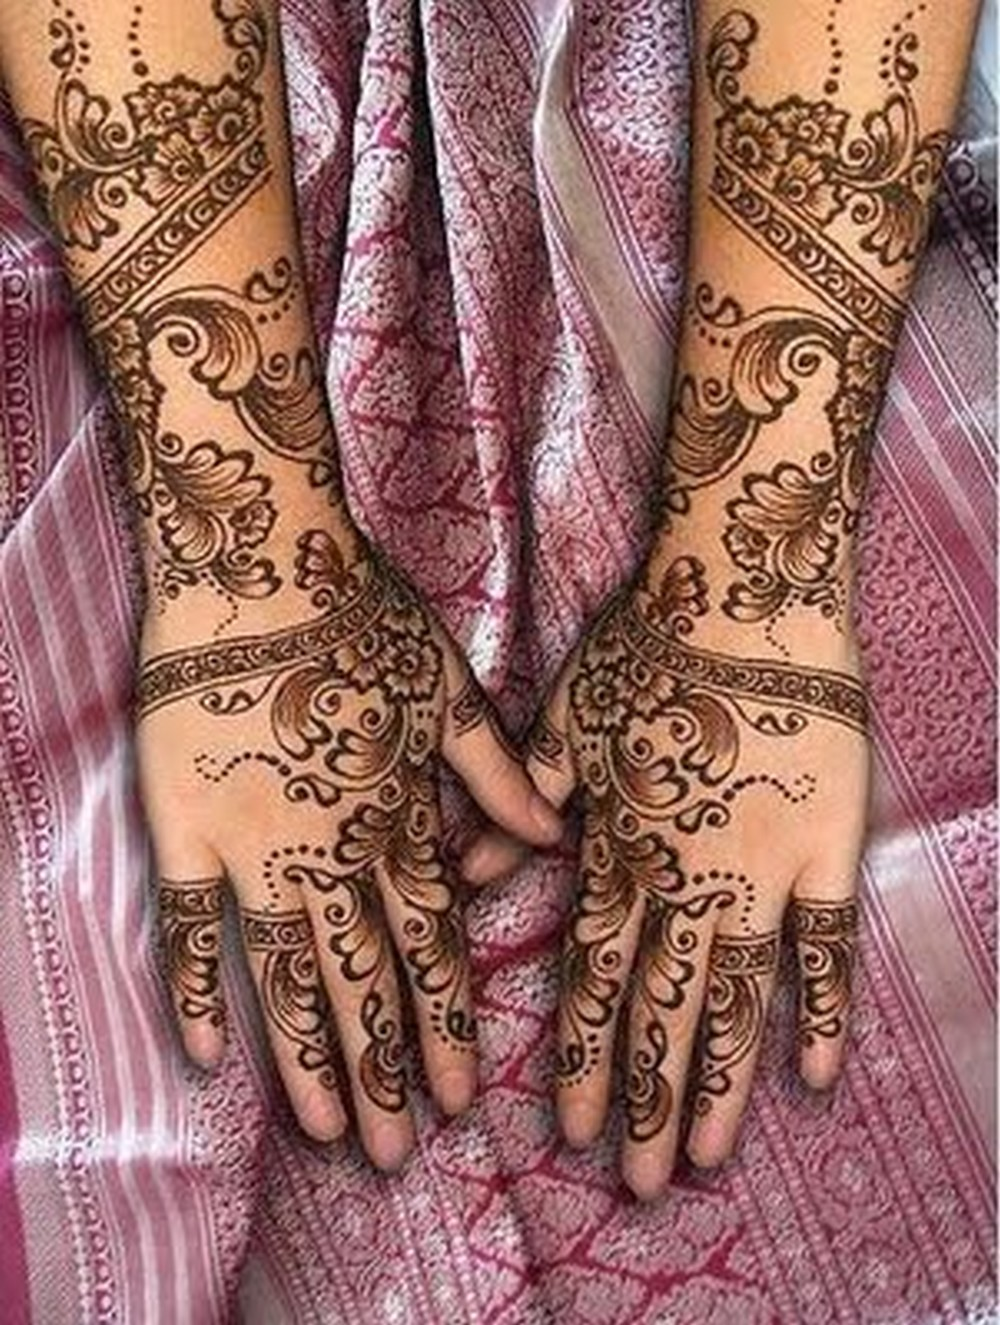 Bridal Mehndi Designs For Hands 2013 | Mehndi Desings 2013